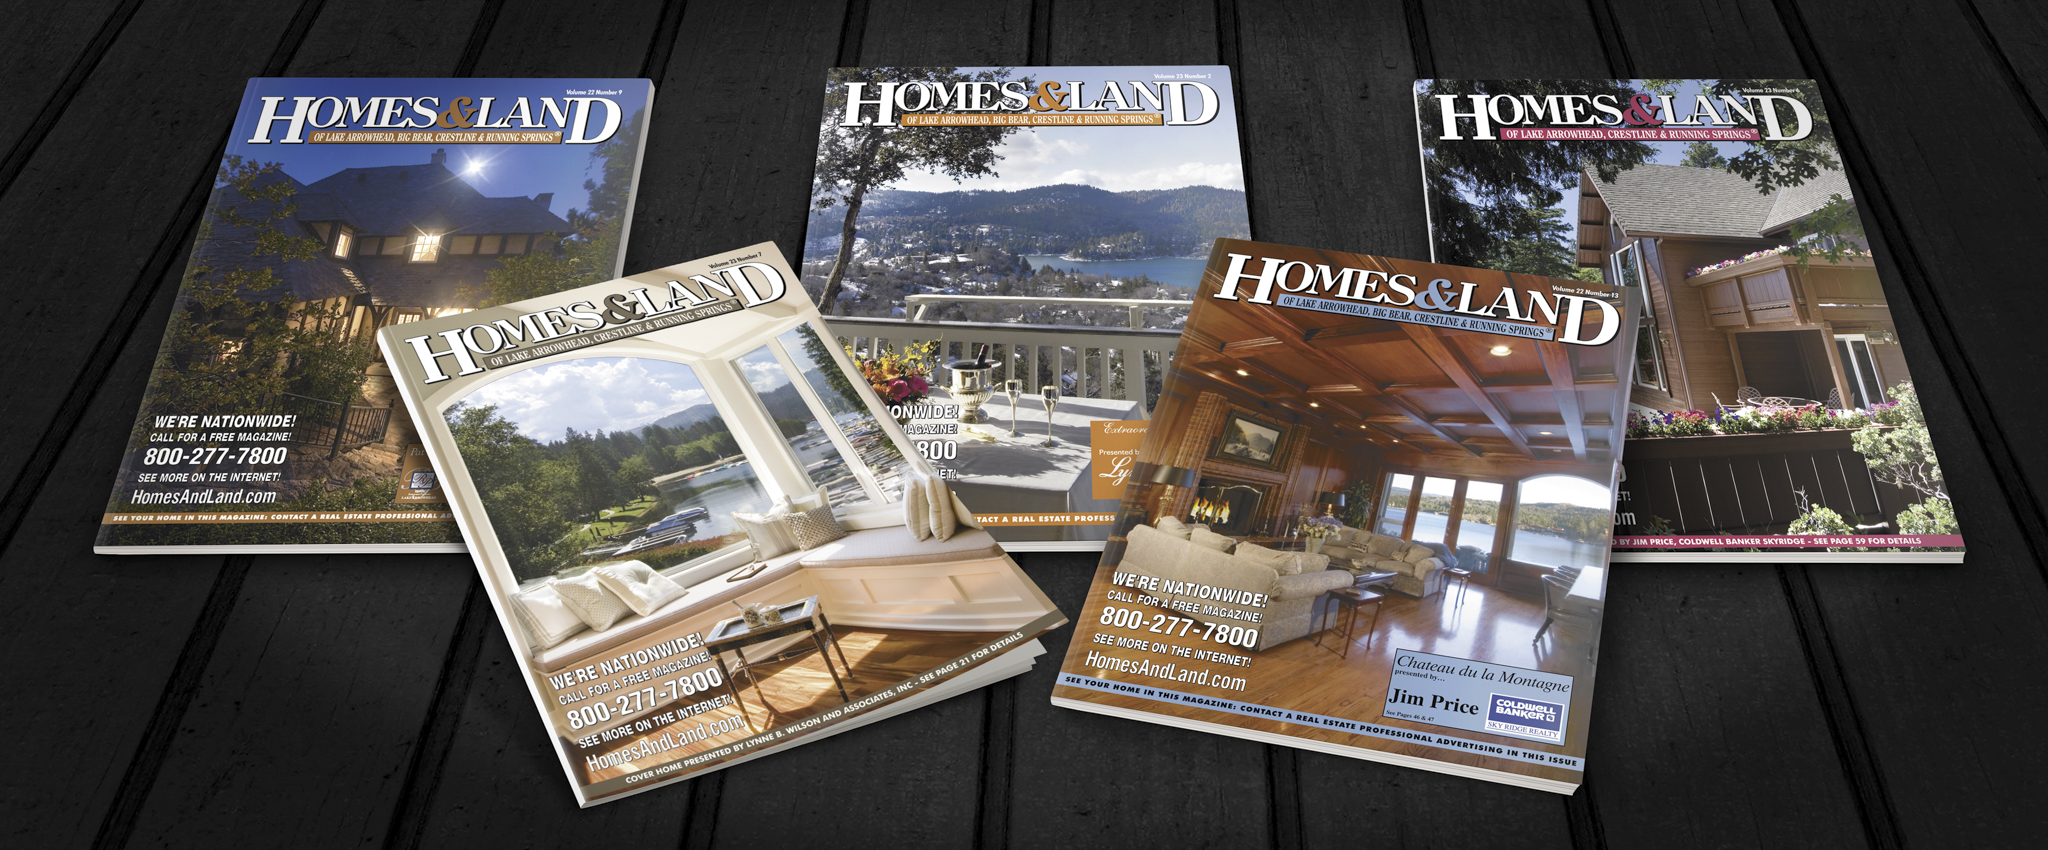 homes & land magazine – ryan hoover photography